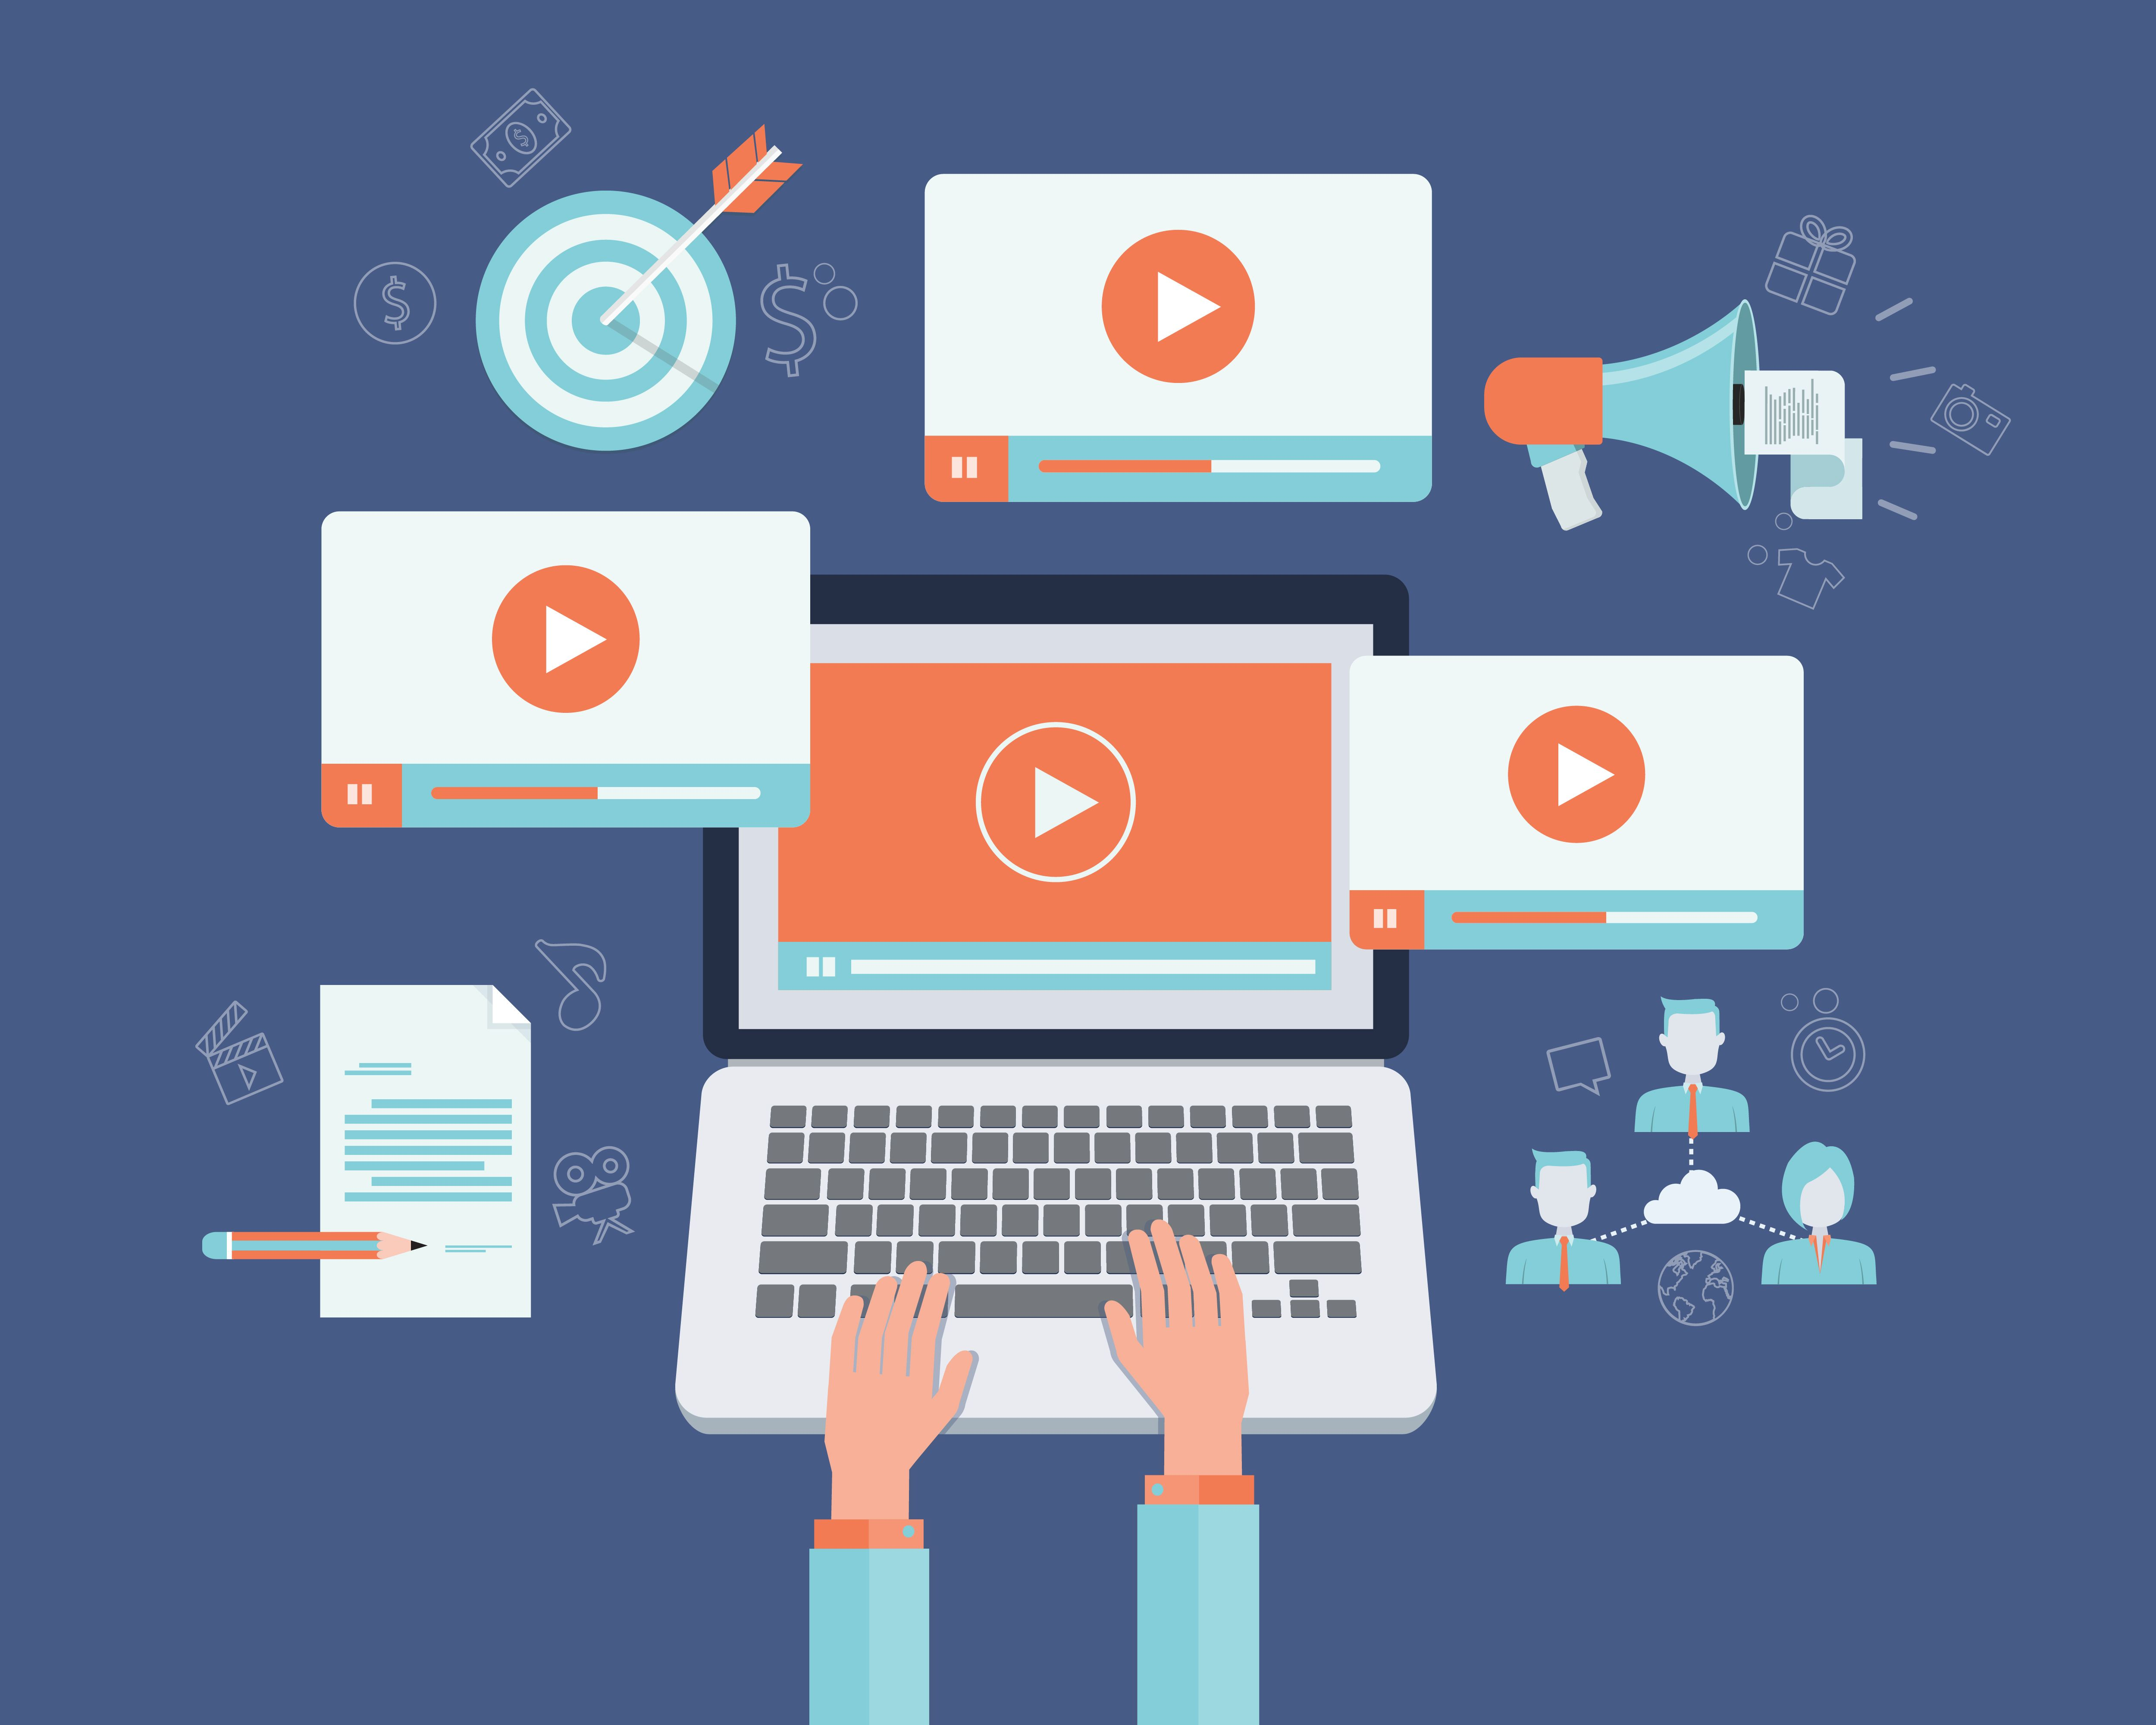 Youre Foolish For Ignoring Video Marketing